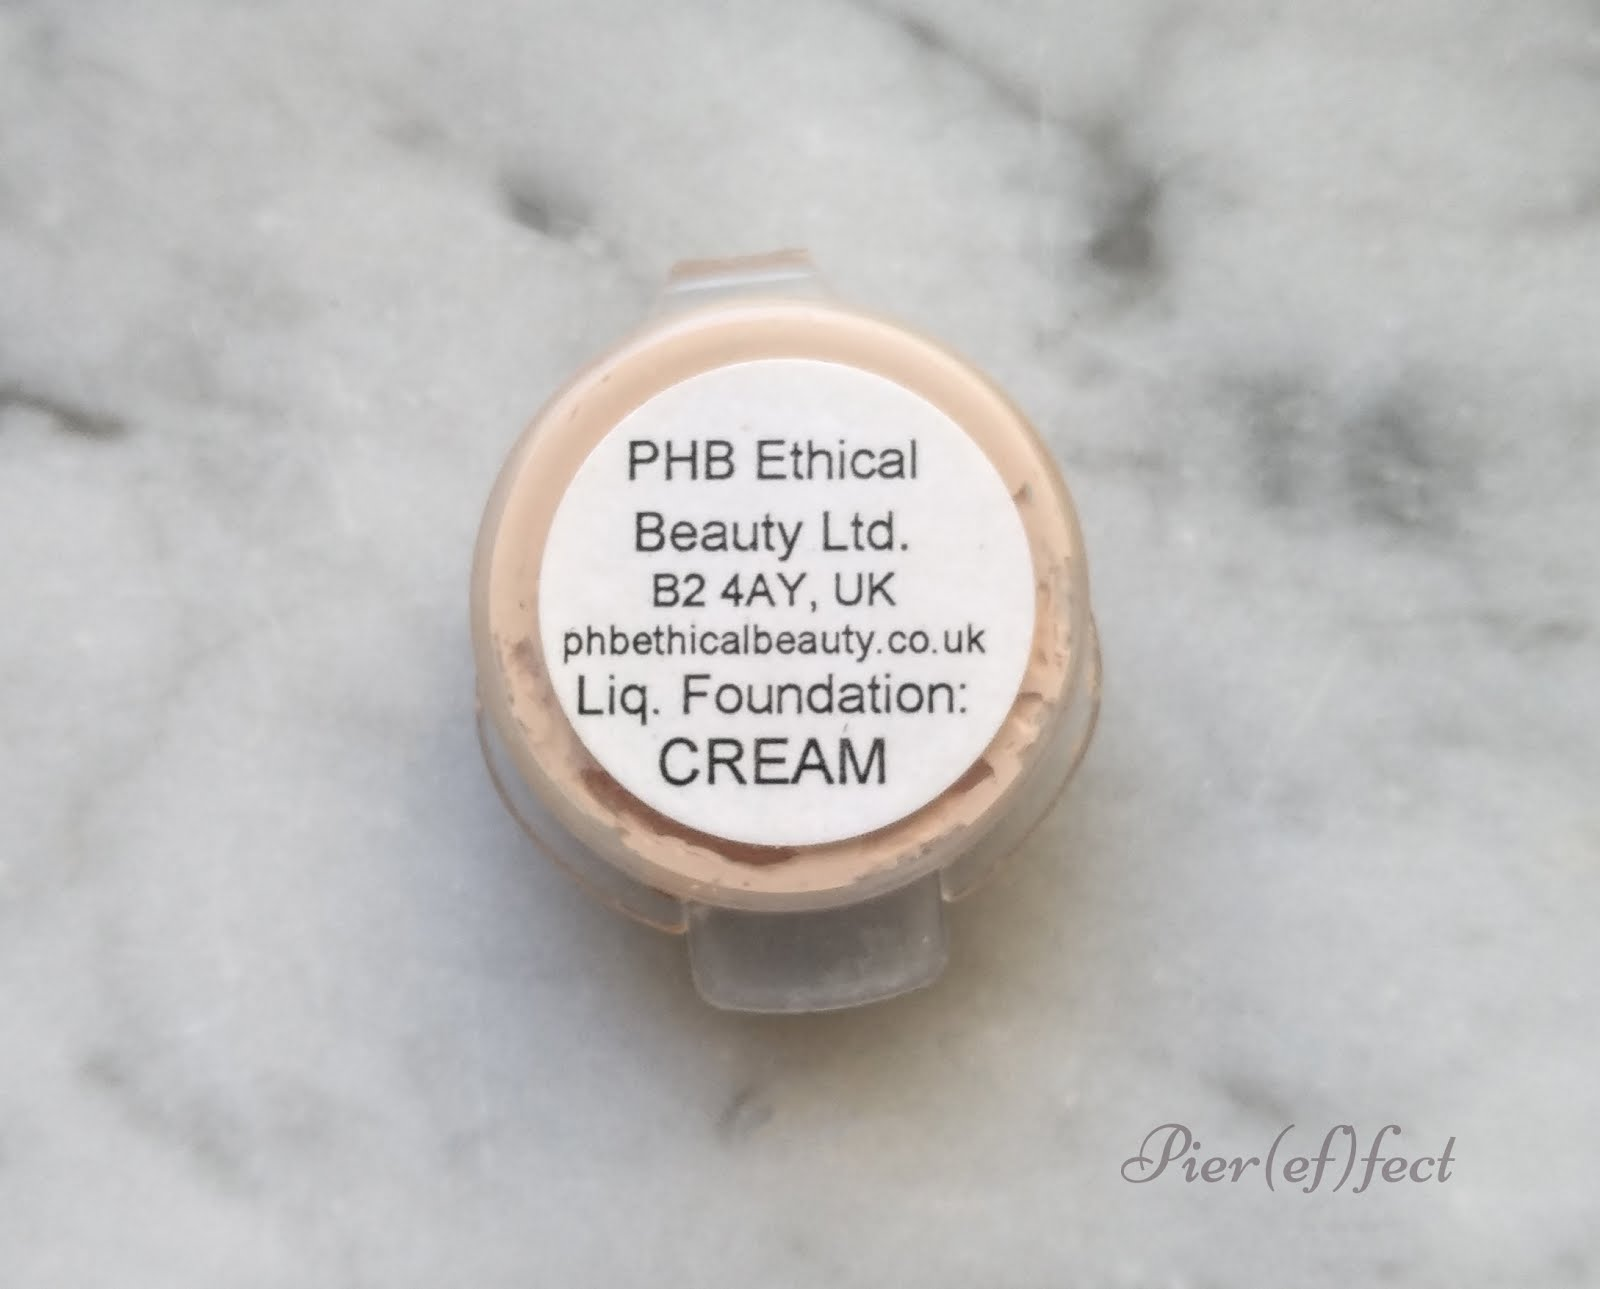 PHB Ethical Beauty Pure Skin Organic Liquid Foundation